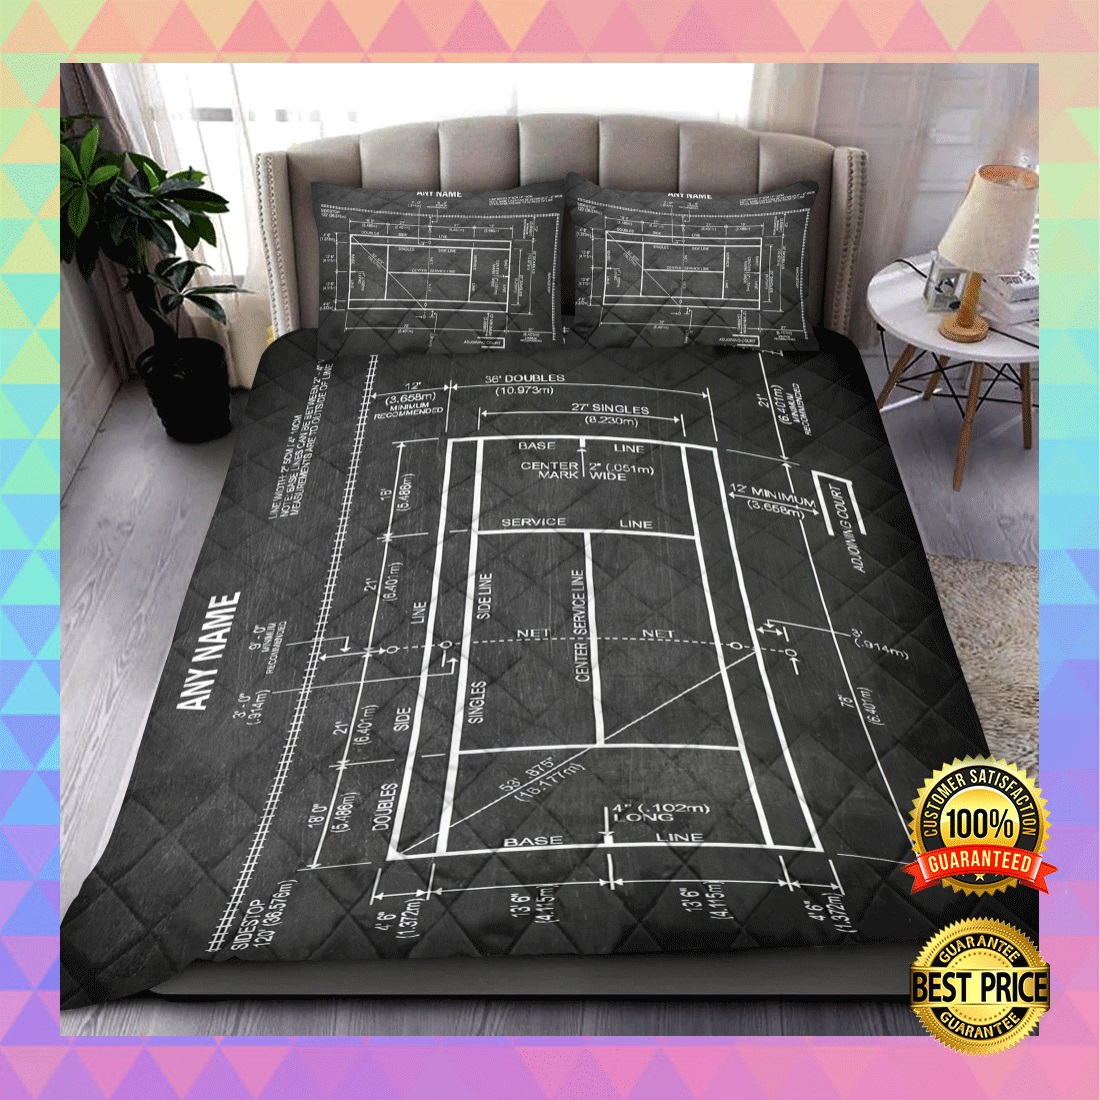 PERSONALIZED TENNIS COURT BEDDING SET 4